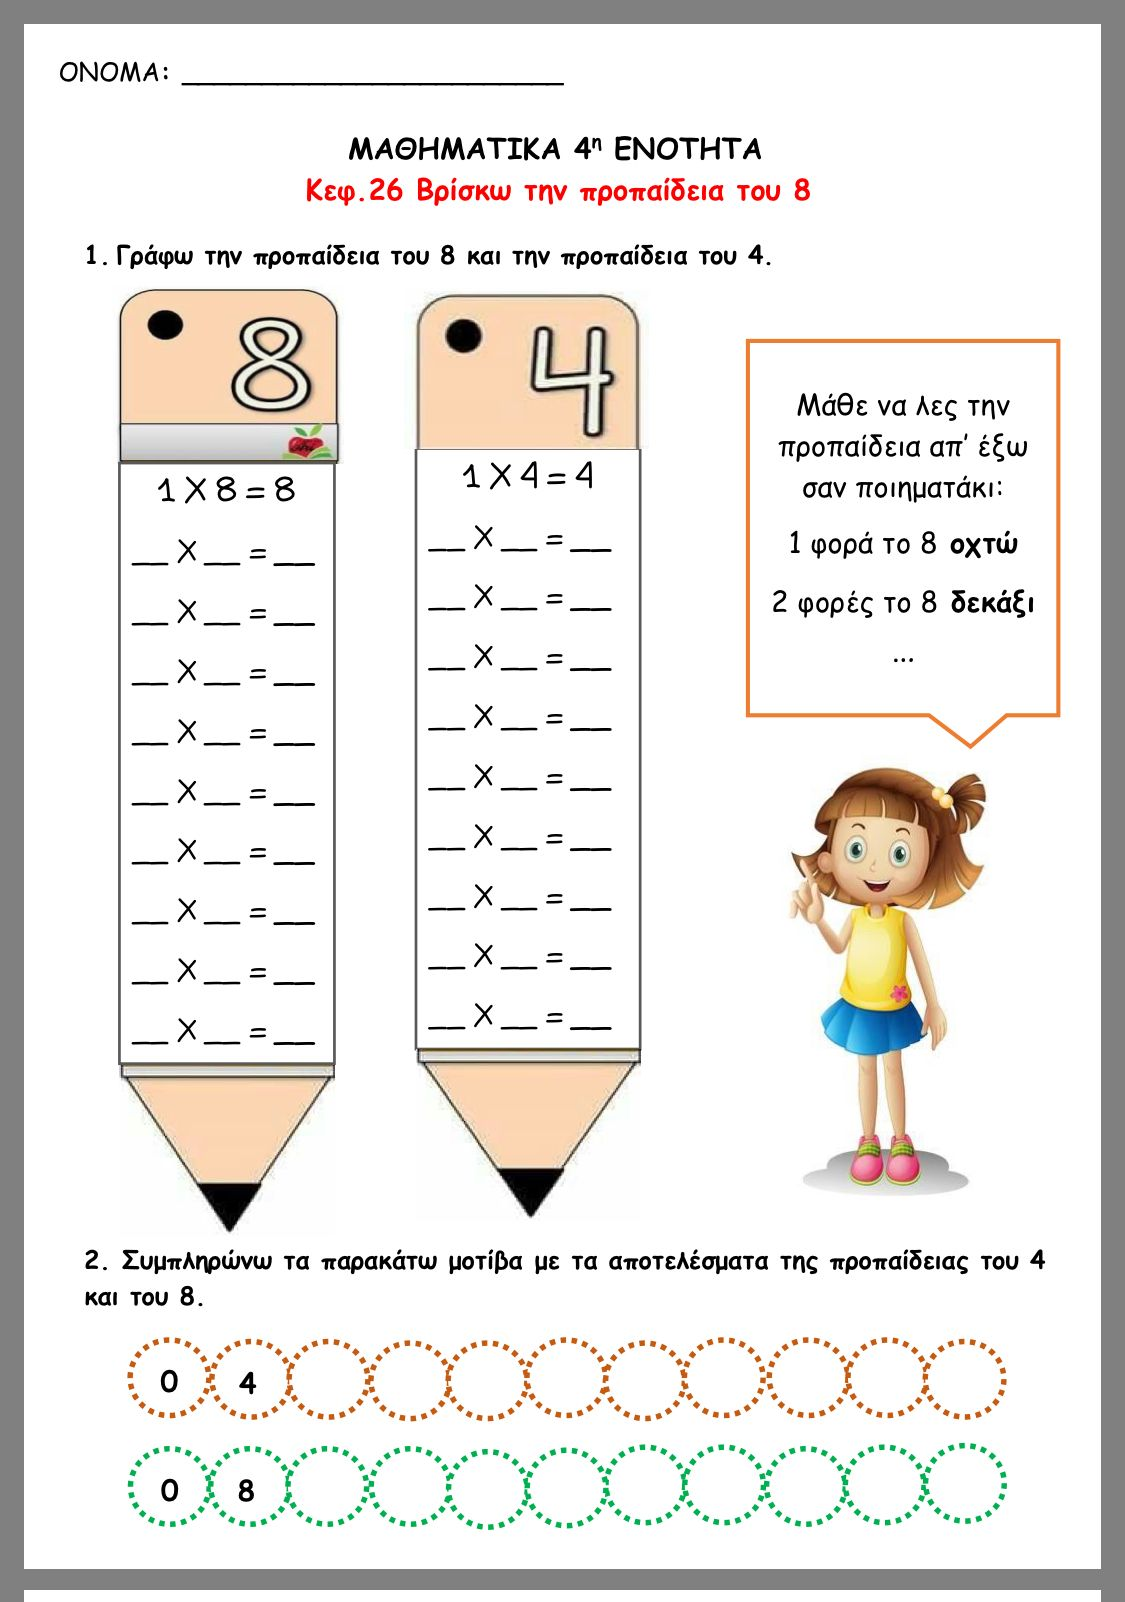 Pin By Mousouli Maria On Ma8hmatika Math Division Worksheets Math Work First Grade Math Worksheets [ 1602 x 1125 Pixel ]